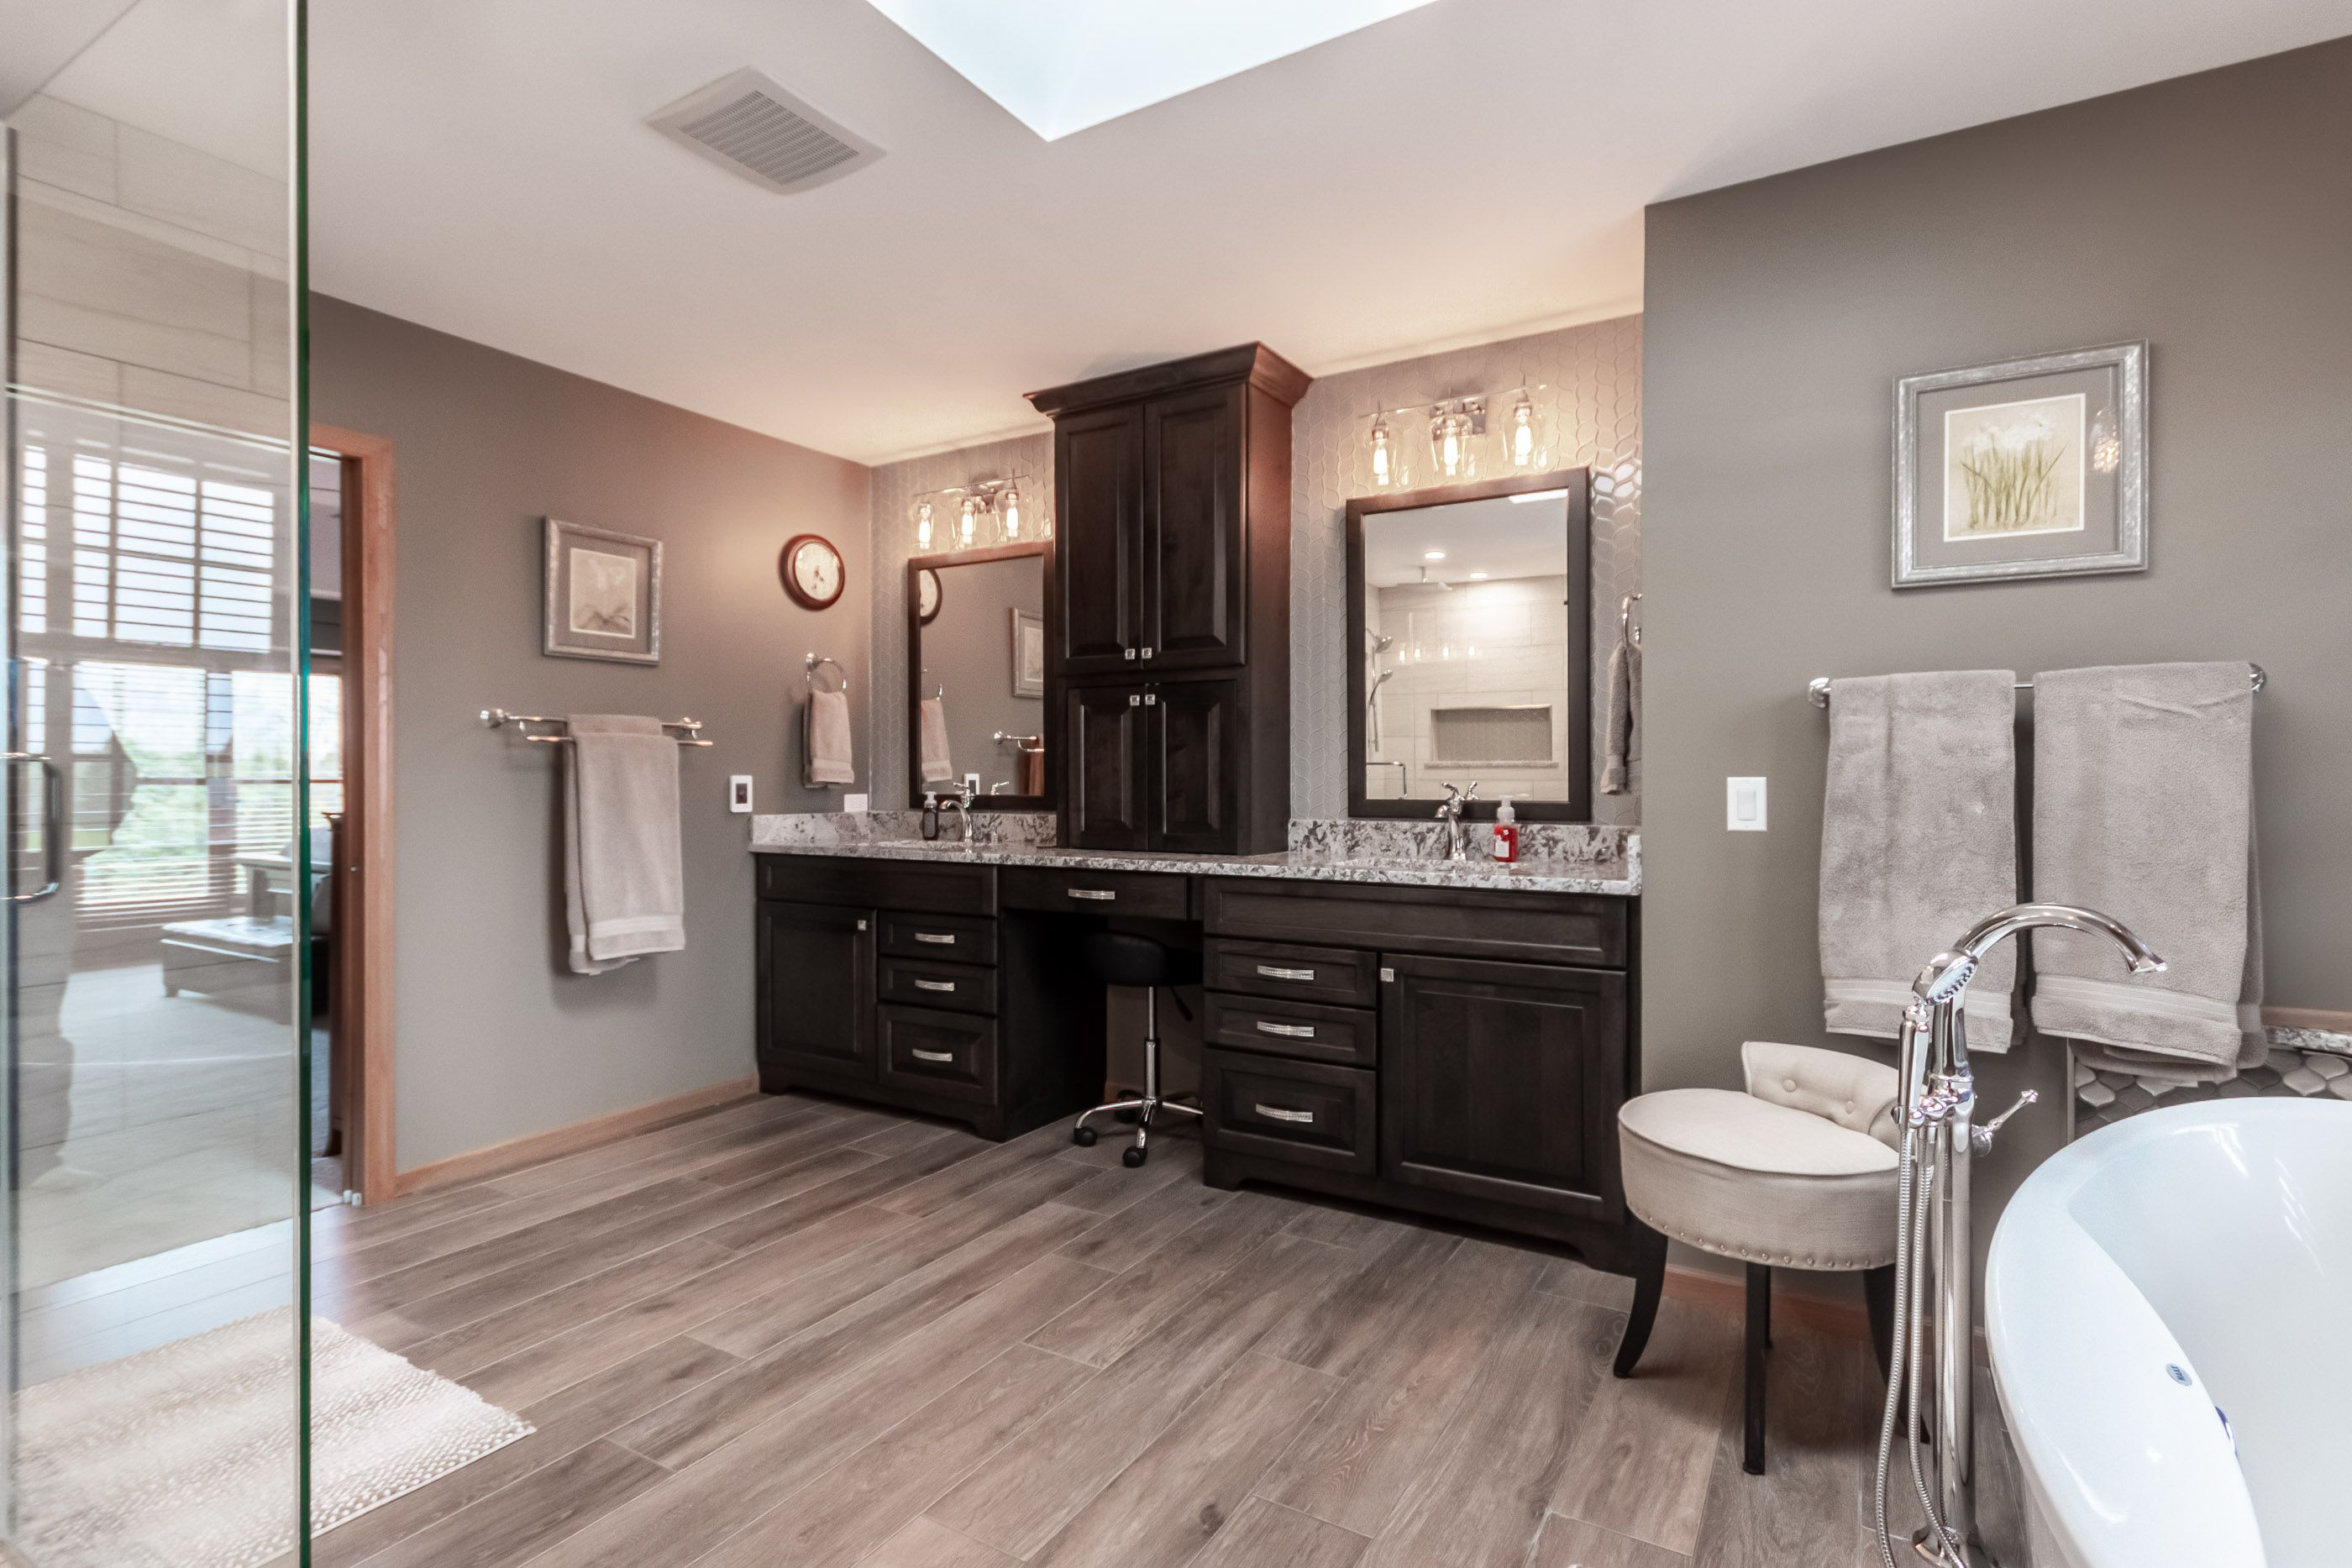 Before & After Remodel - Kitchen And Bath (See Video) In 2020 | Bathroom Design, Kitchen Remodel, Home Remodeling